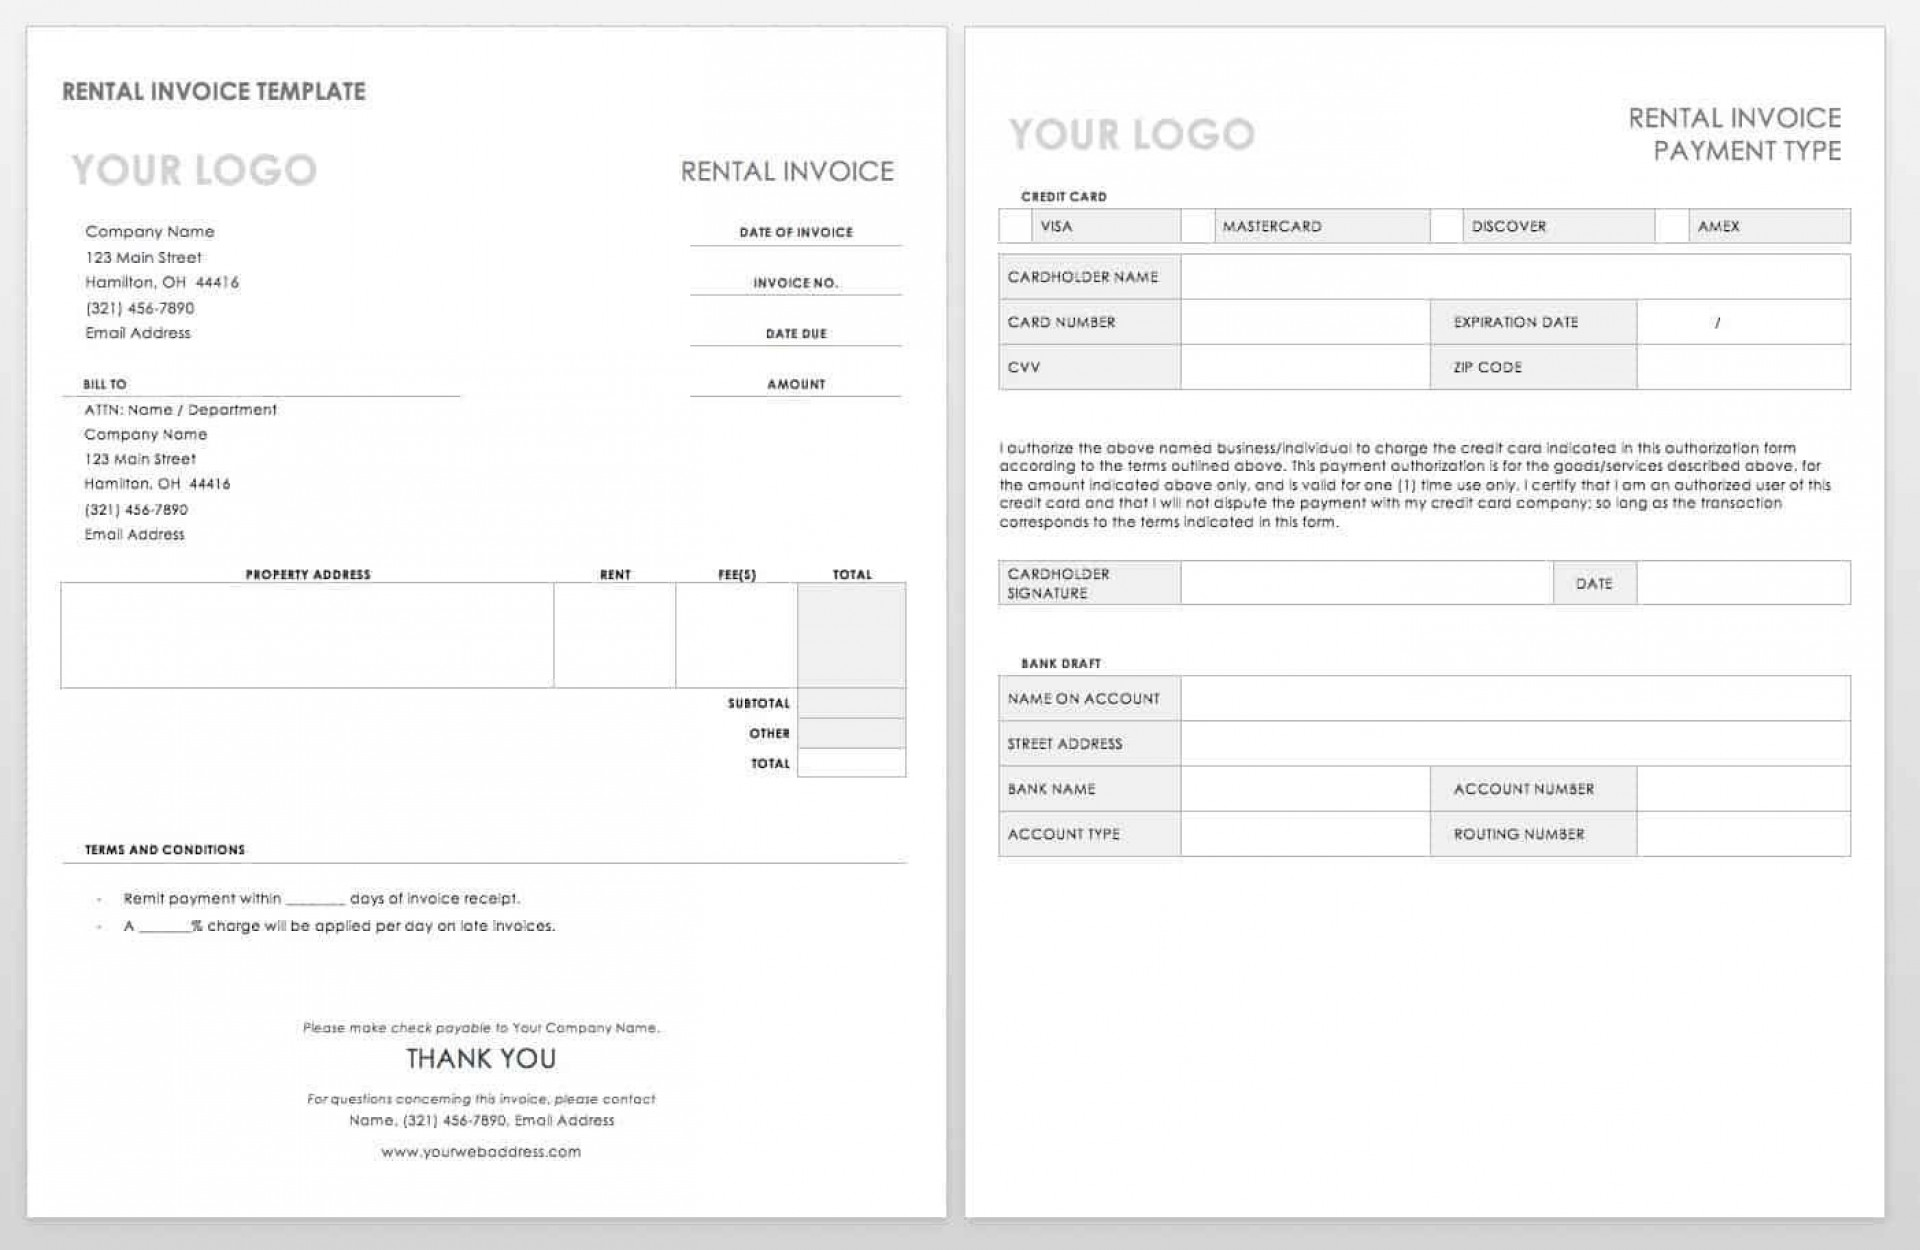 004 Astounding Free Invoice Template For Word Highest Clarity  Receipt Microsoft Printable Uk1920